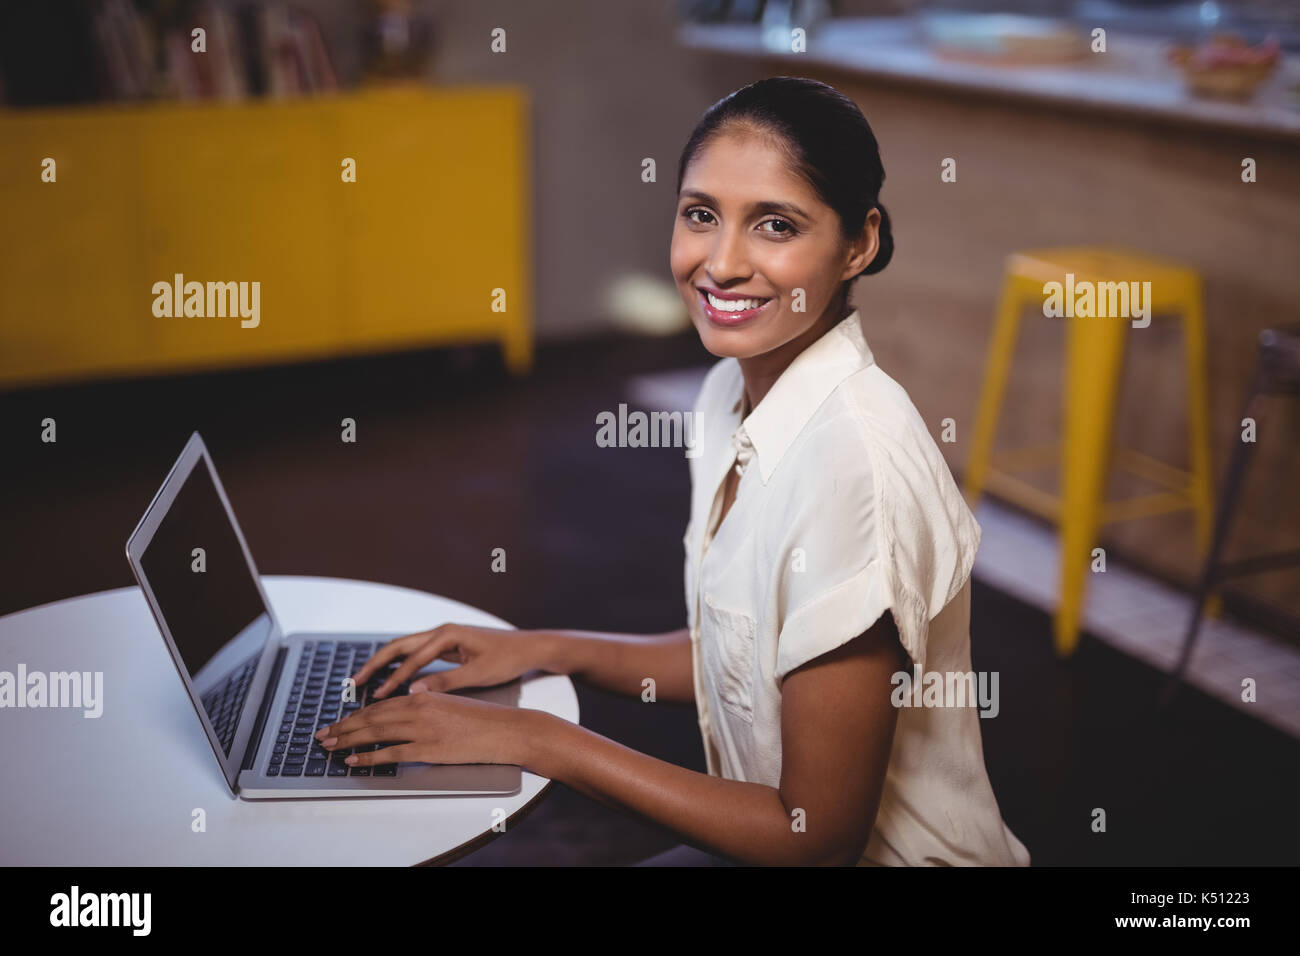 Side view portrait of smiling young woman using laptop in coffee shop Photo Stock